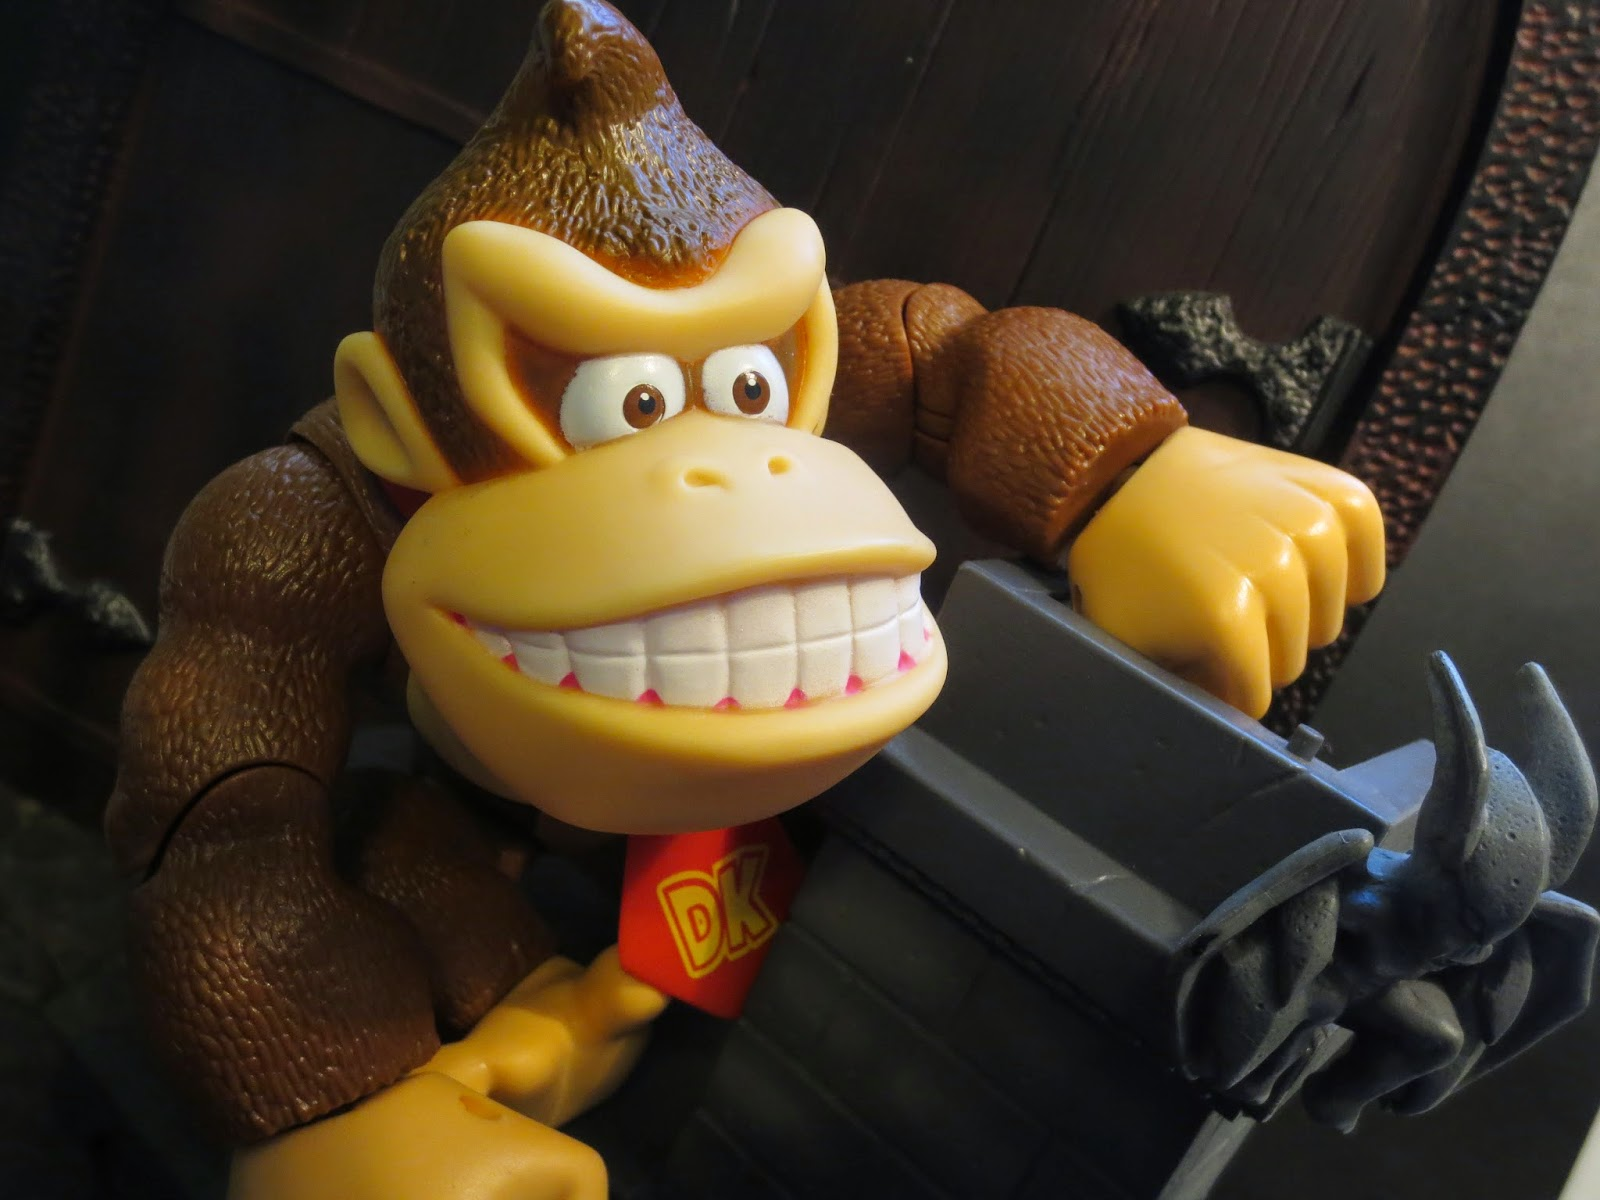 donkey kong first game